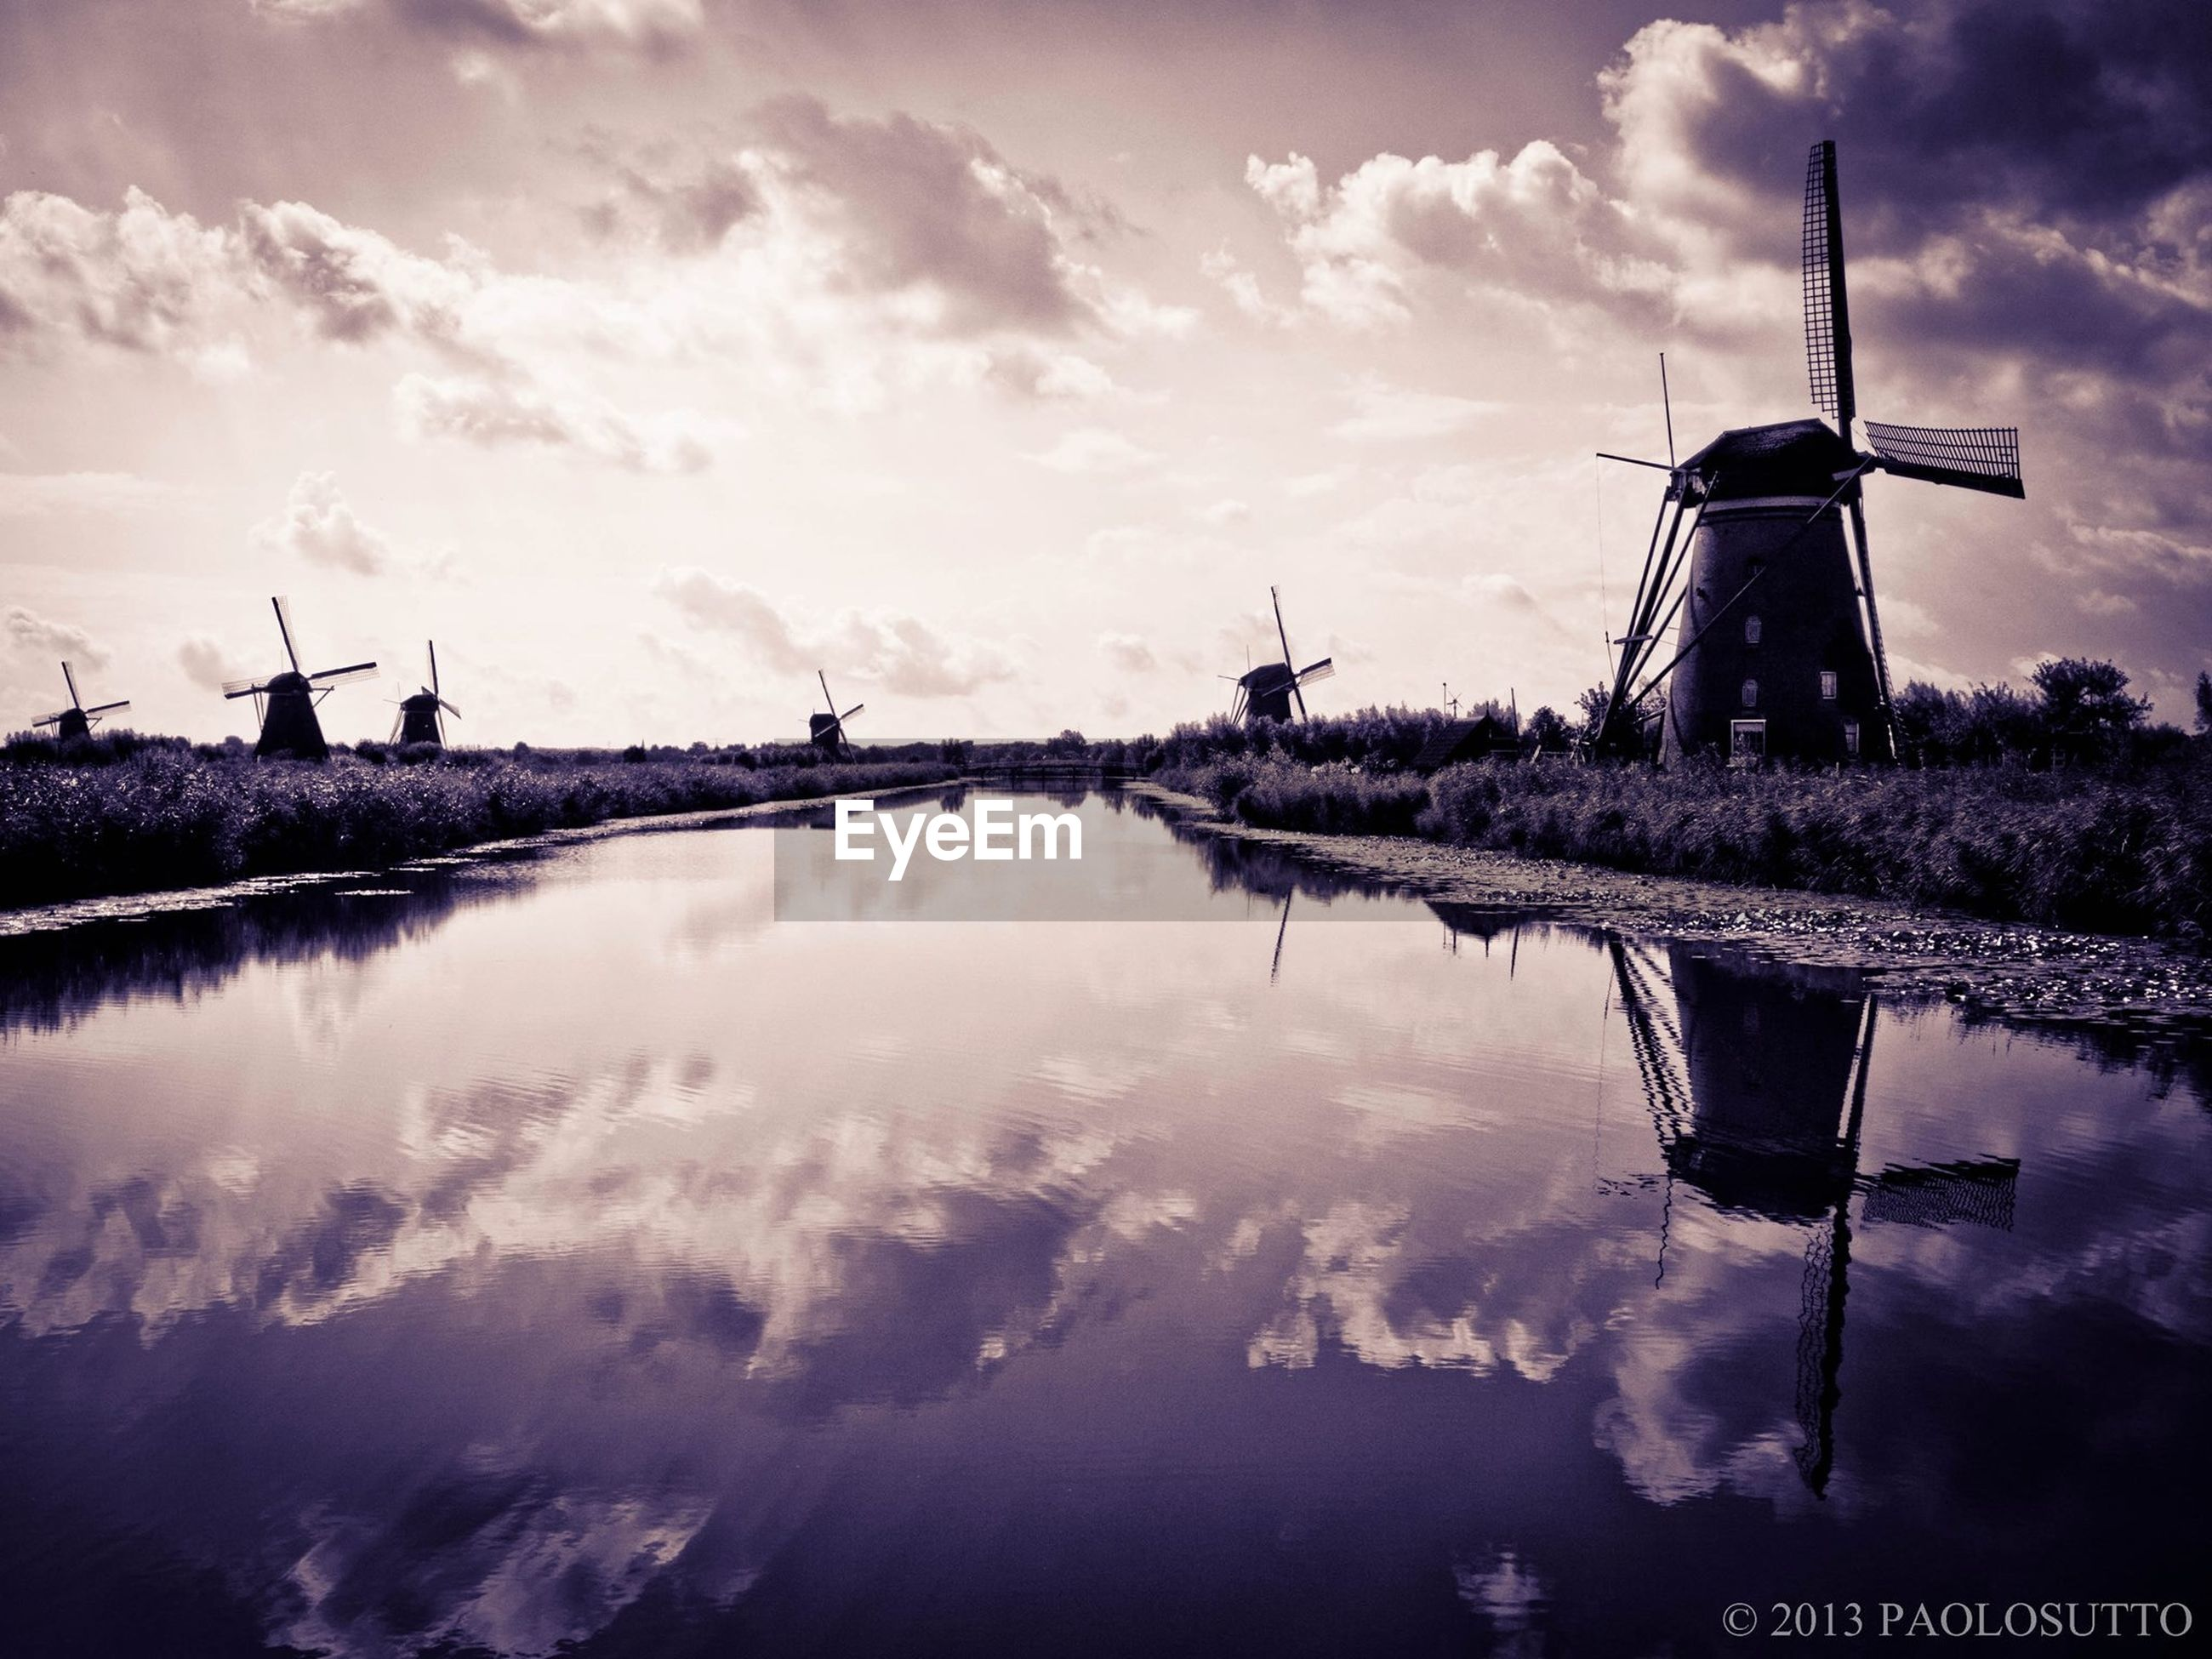 water, sky, cloud - sky, reflection, cloudy, built structure, lake, architecture, tranquility, nature, standing water, cloud, weather, tranquil scene, scenics, building exterior, river, waterfront, windmill, beauty in nature